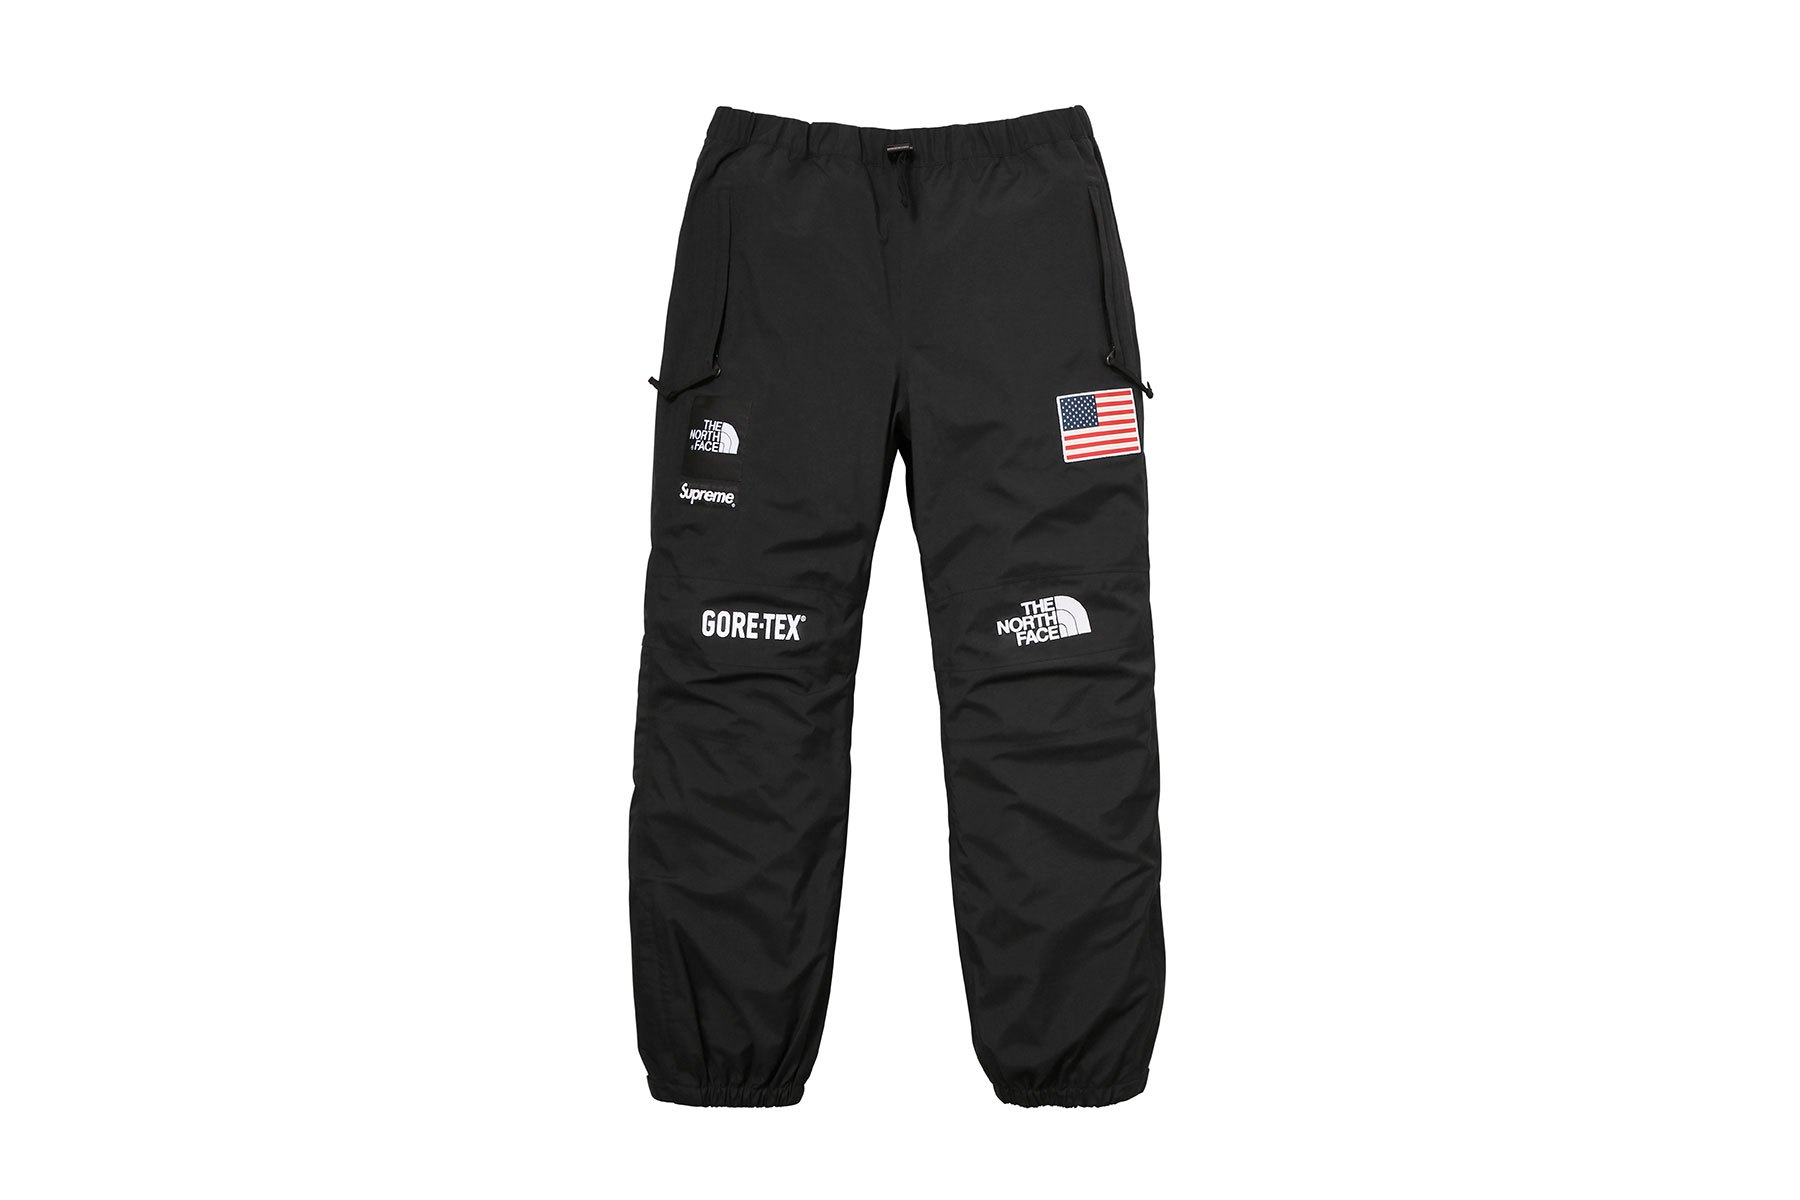 supreme-the-north-face-2017-spring-summer-black-gore-tex-pant-20